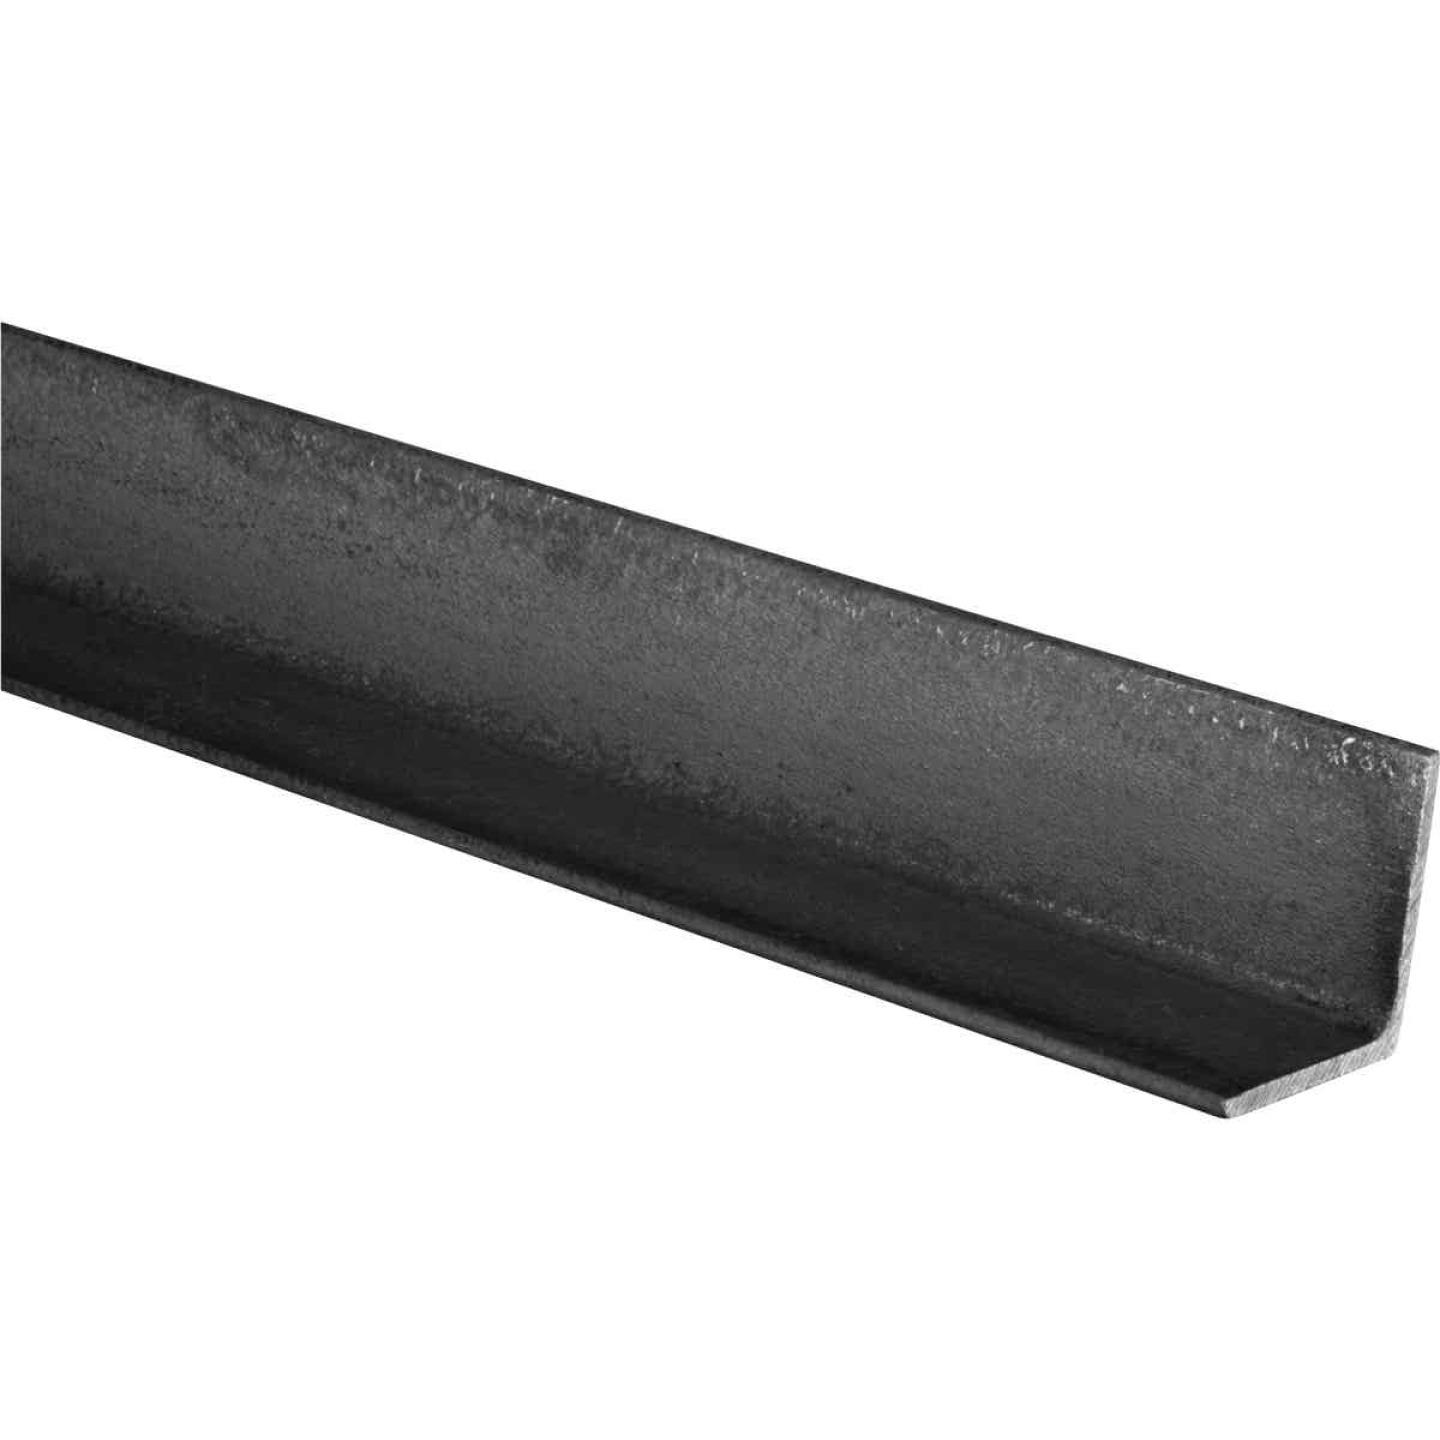 HILLMAN Steelworks Plain 1 In. x 6 Ft., 1/8 In. Weldable Solid Angle Image 1